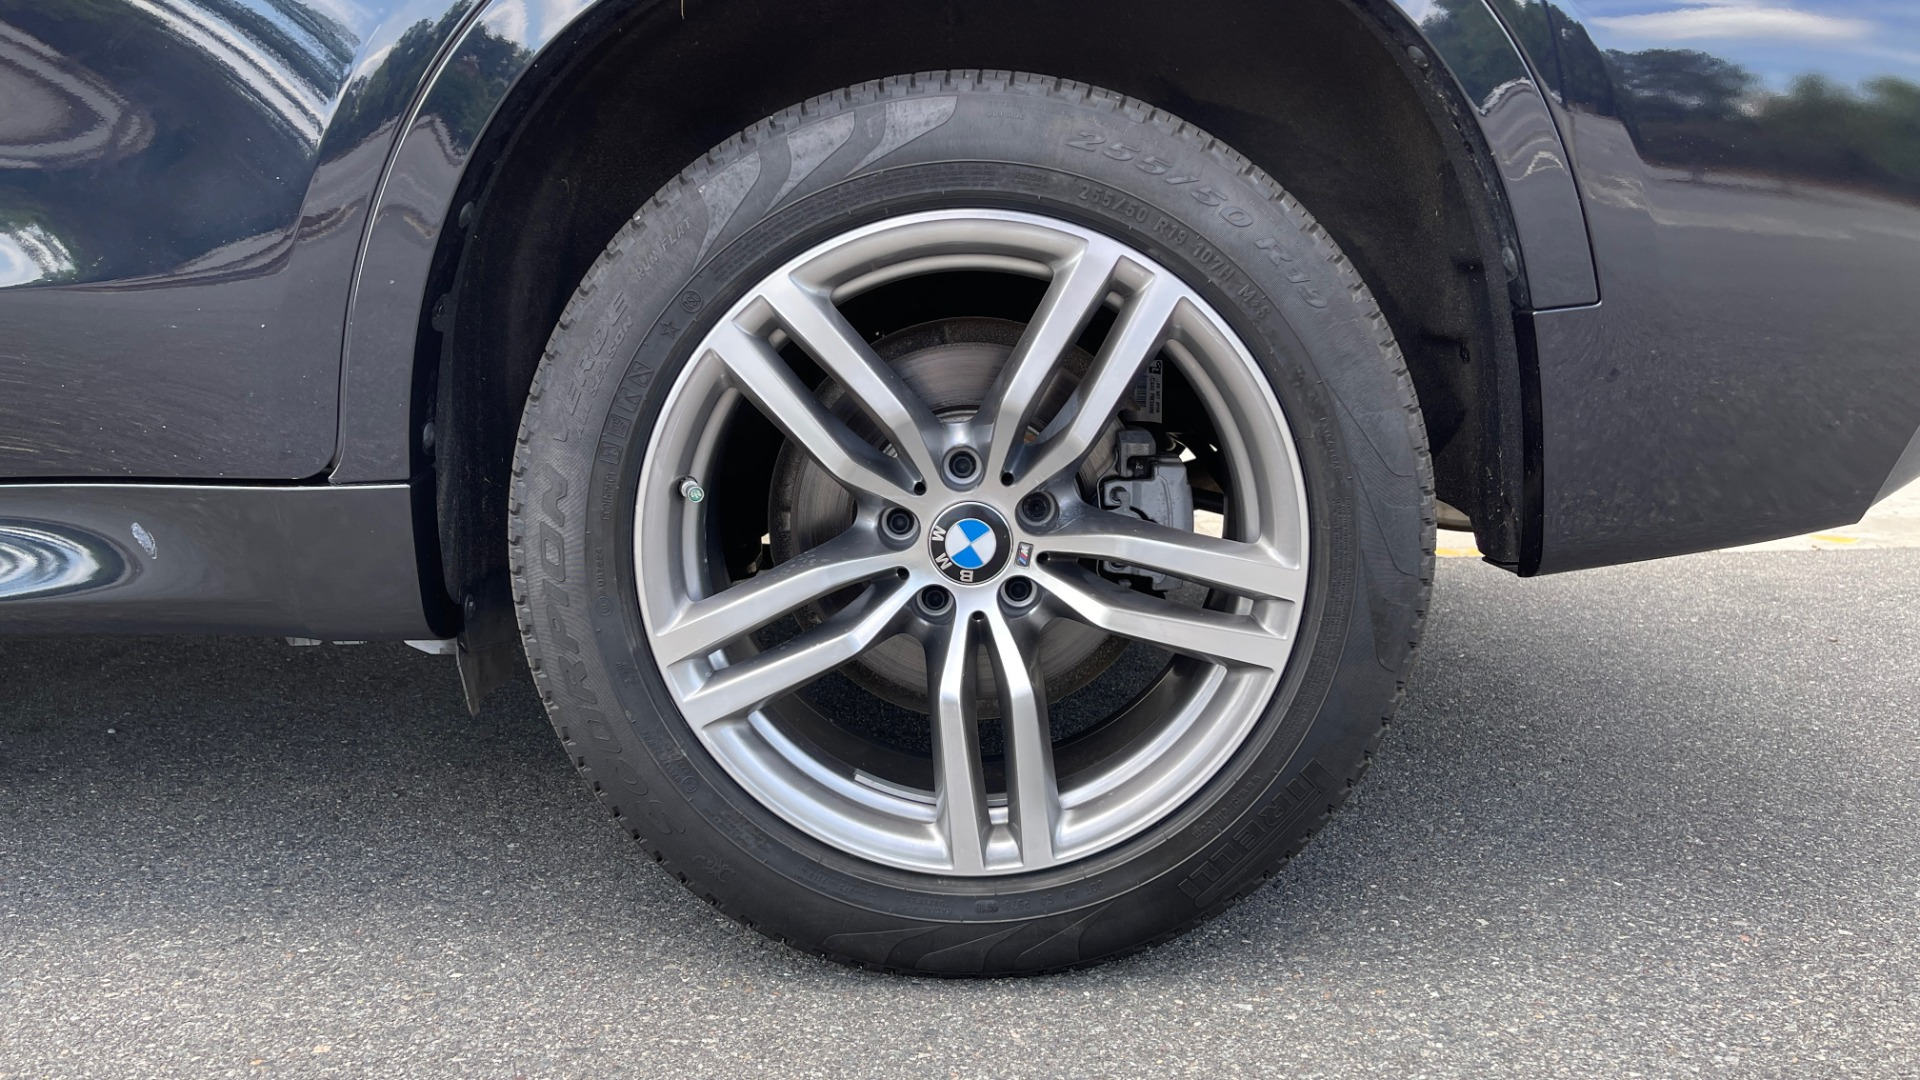 Used 2018 BMW X6 XDRIVE35I M-SPORT / DRVR ASST / PRK ASST / H/K SND / APPLE / WIRELESS CHARG for sale $51,995 at Formula Imports in Charlotte NC 28227 70